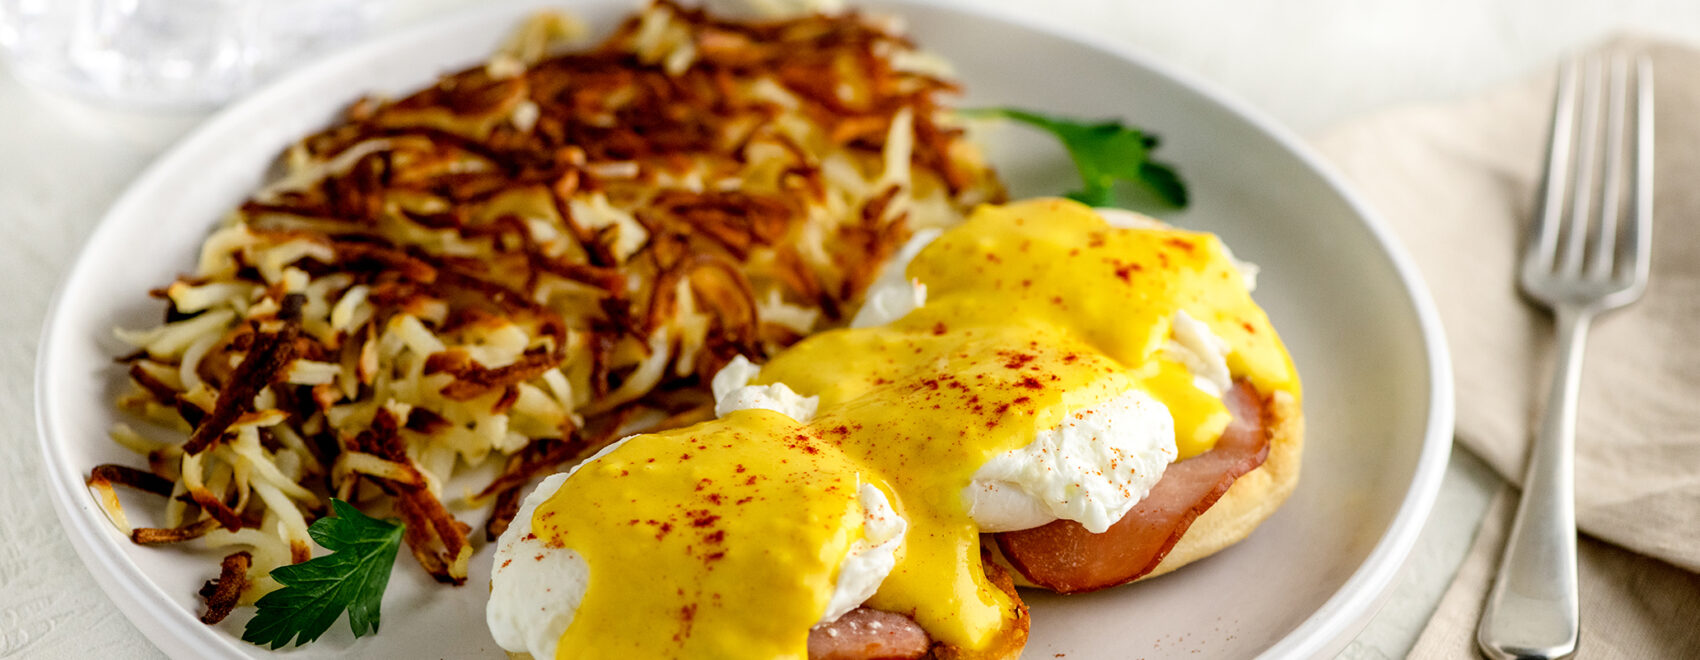 Eggs benedict on white plate with hash browns